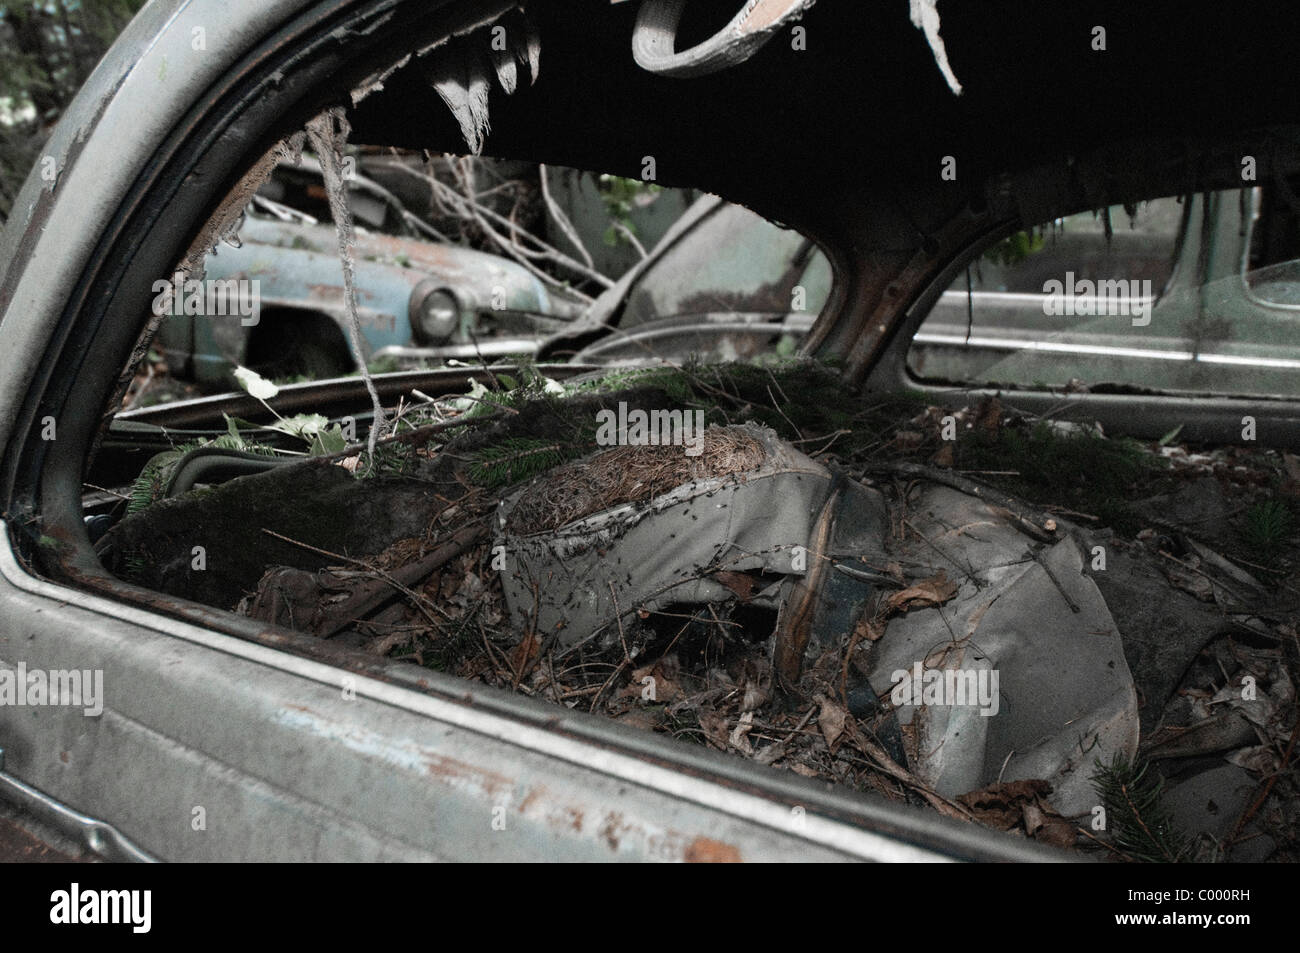 Ants In Car >> Ants In The Rotten Interior Of A Wrecked Car At The Oldtimer